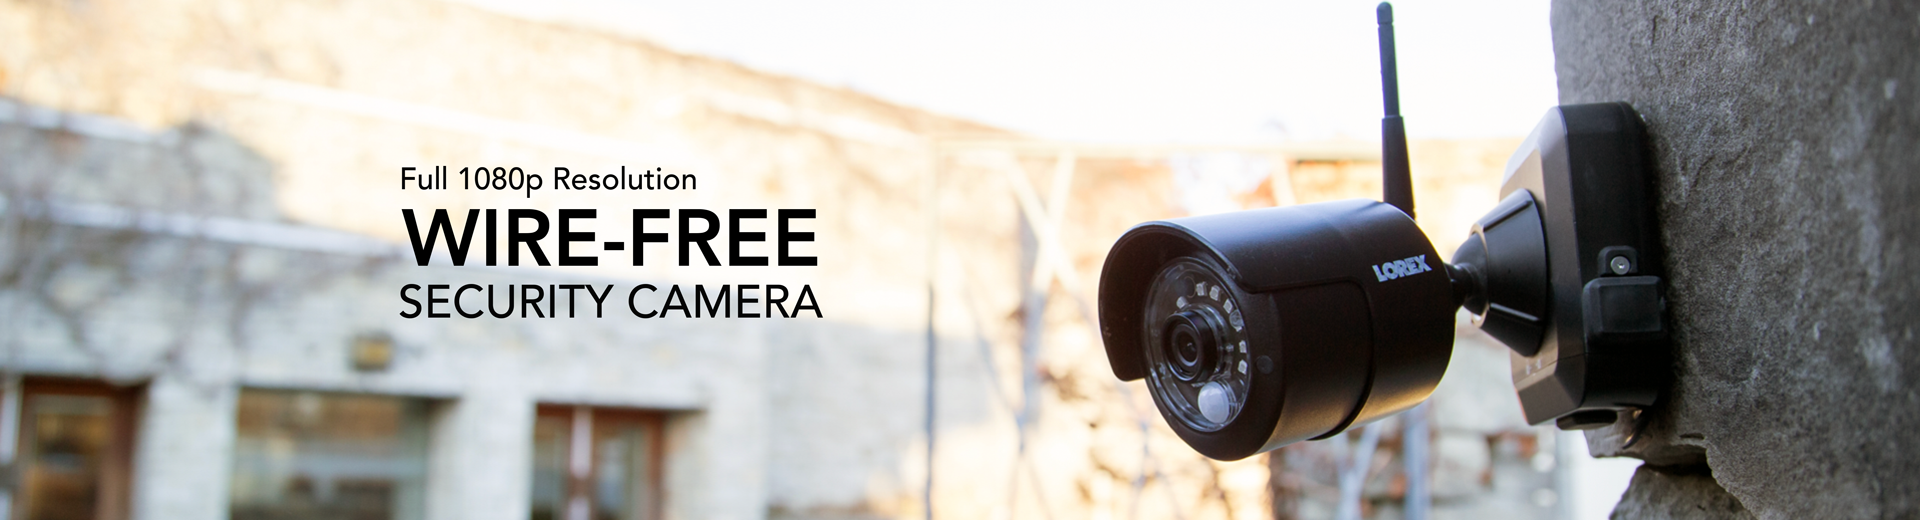 Wire Free Security Camera Systems Long Distance Video